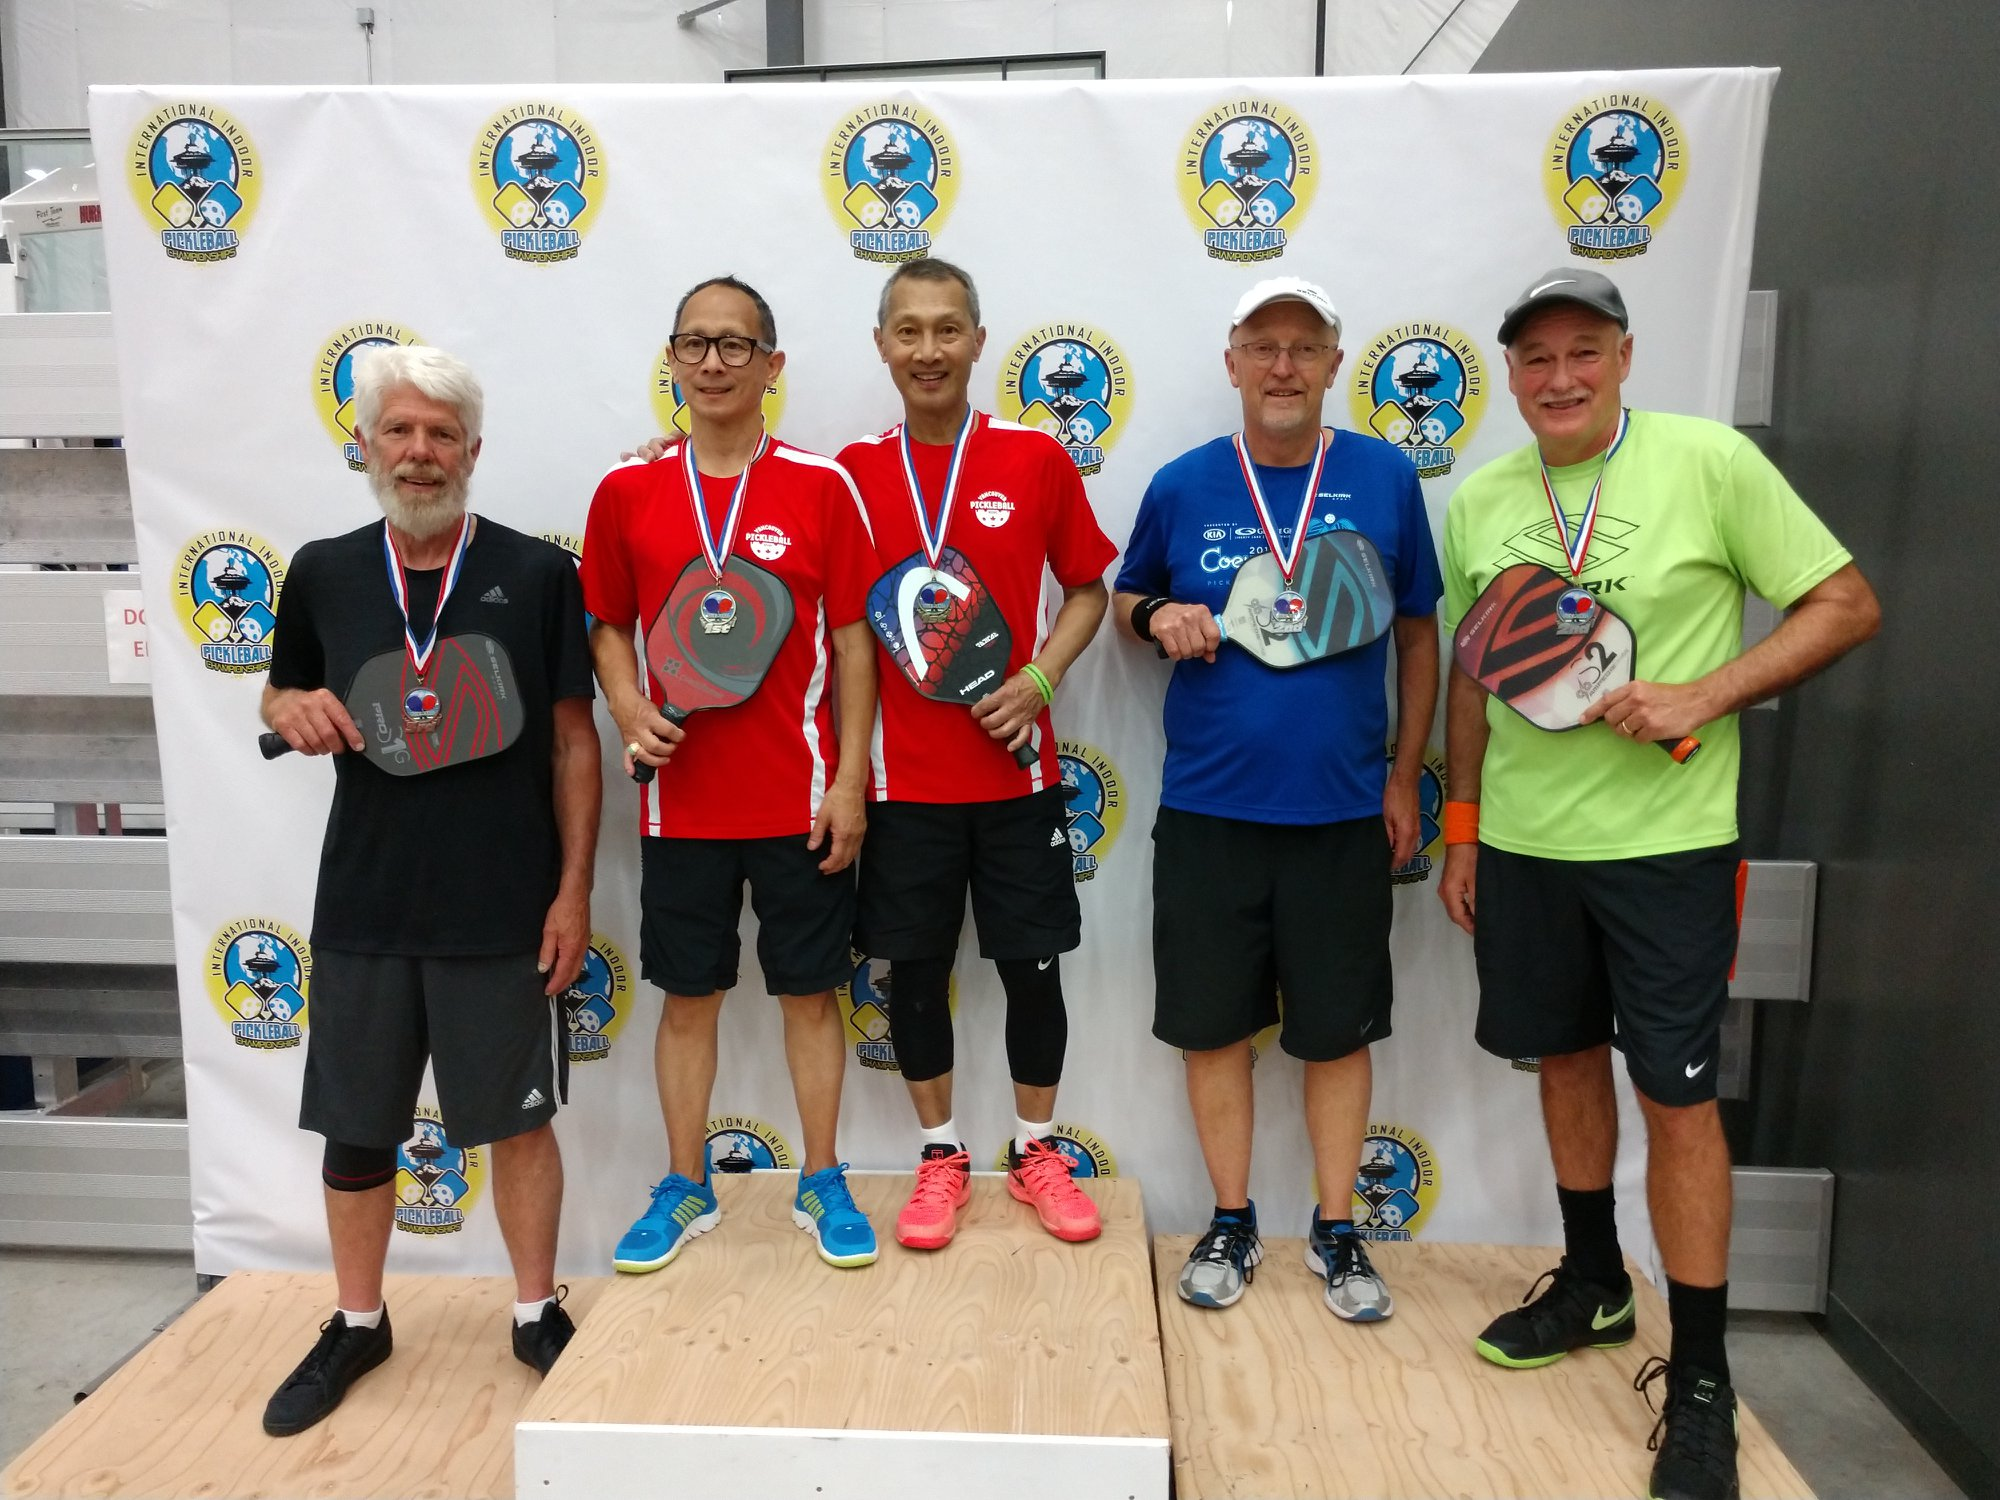 Men's Doubles 4.0, 50+Steve Bennett/John Freeman - Bronze